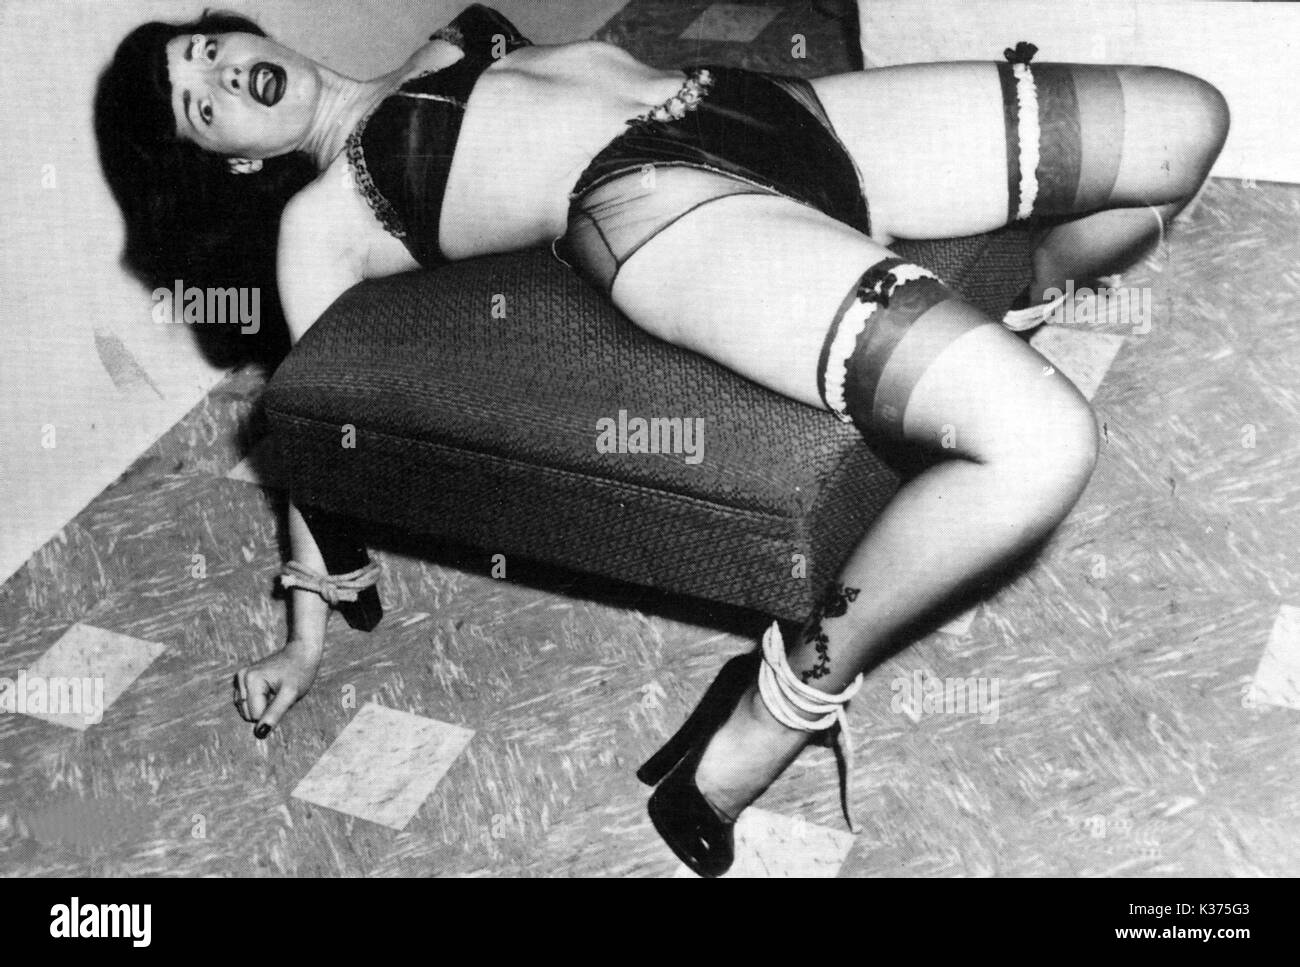 Bettie Page Hd bettie page stock photo: 156895315 - alamy